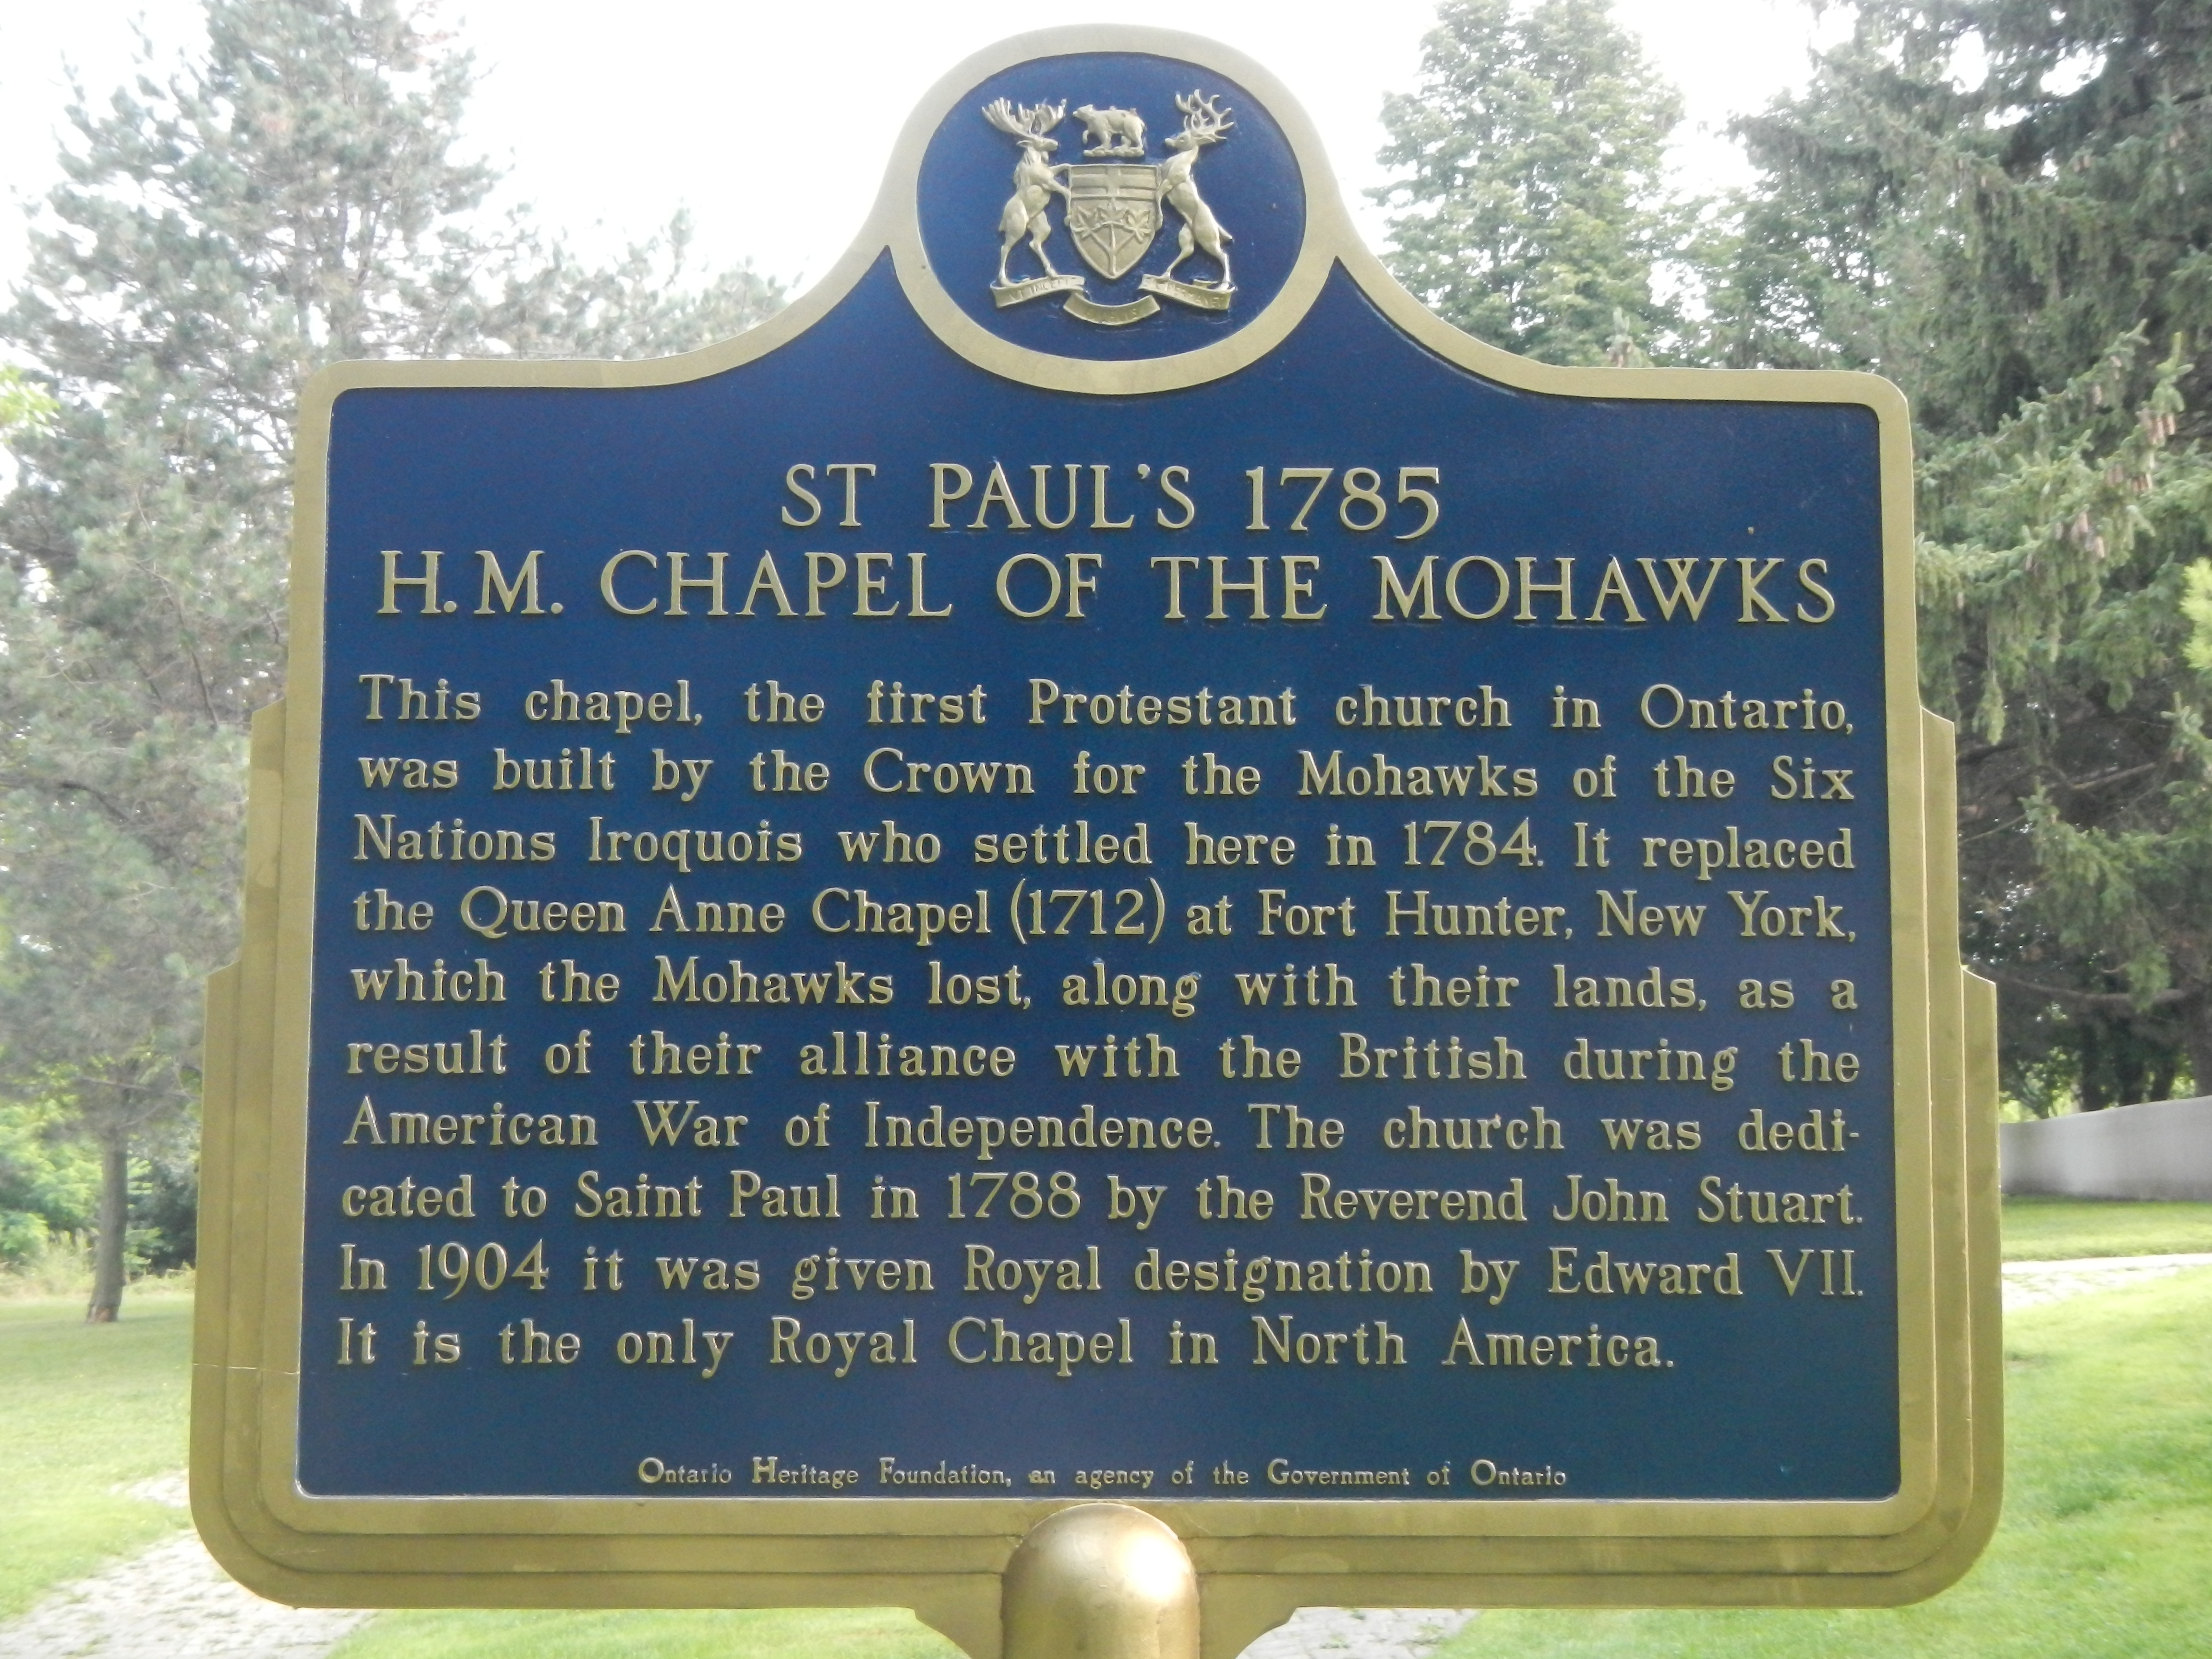 St. Paul's 1785, H.M. Chapel of the Mohawks Marker